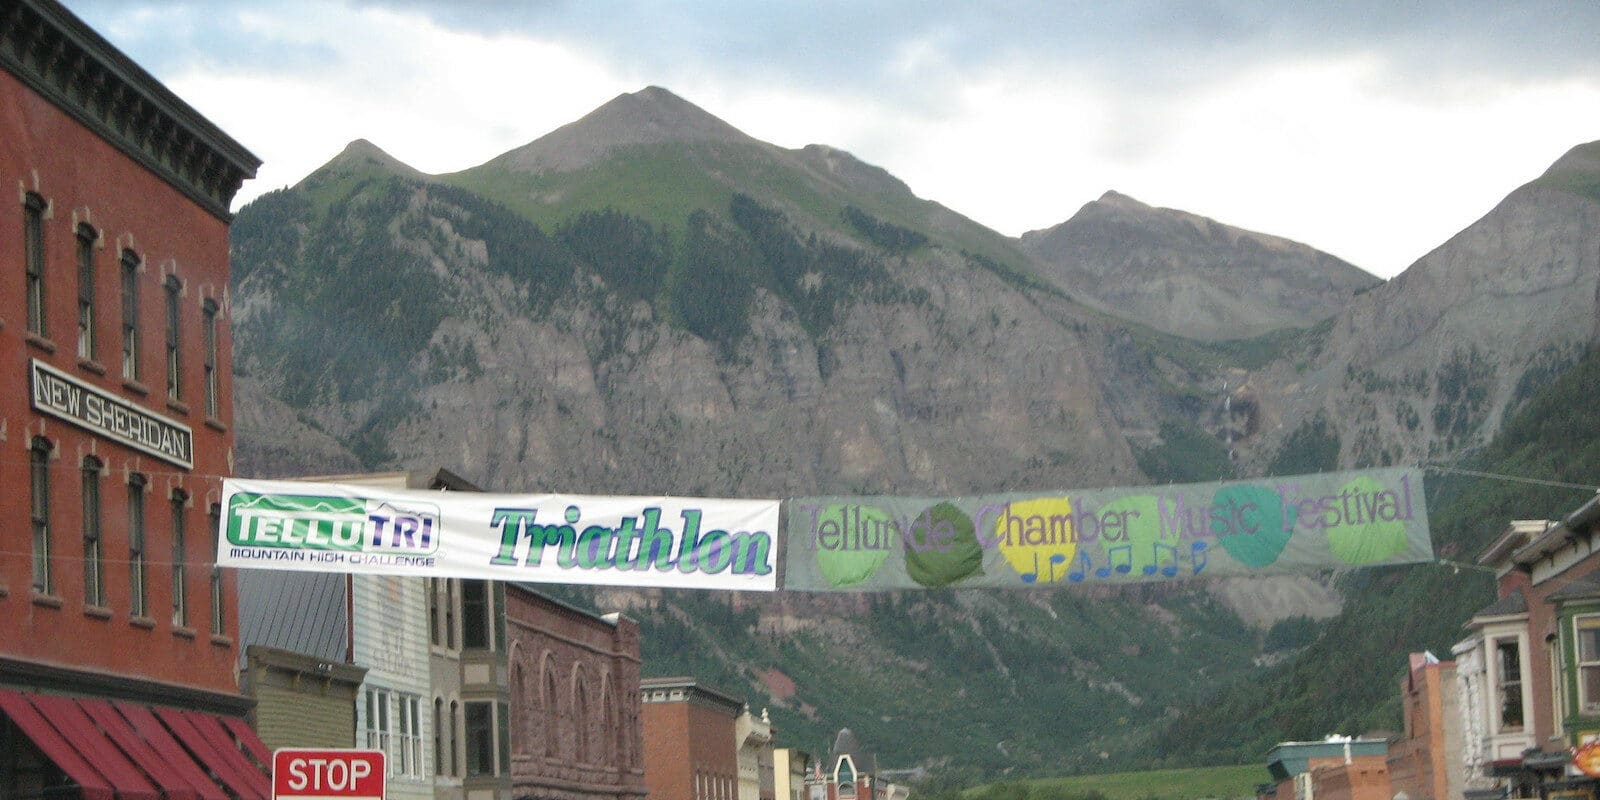 Image of the Telluride Chamber Music Festival sign